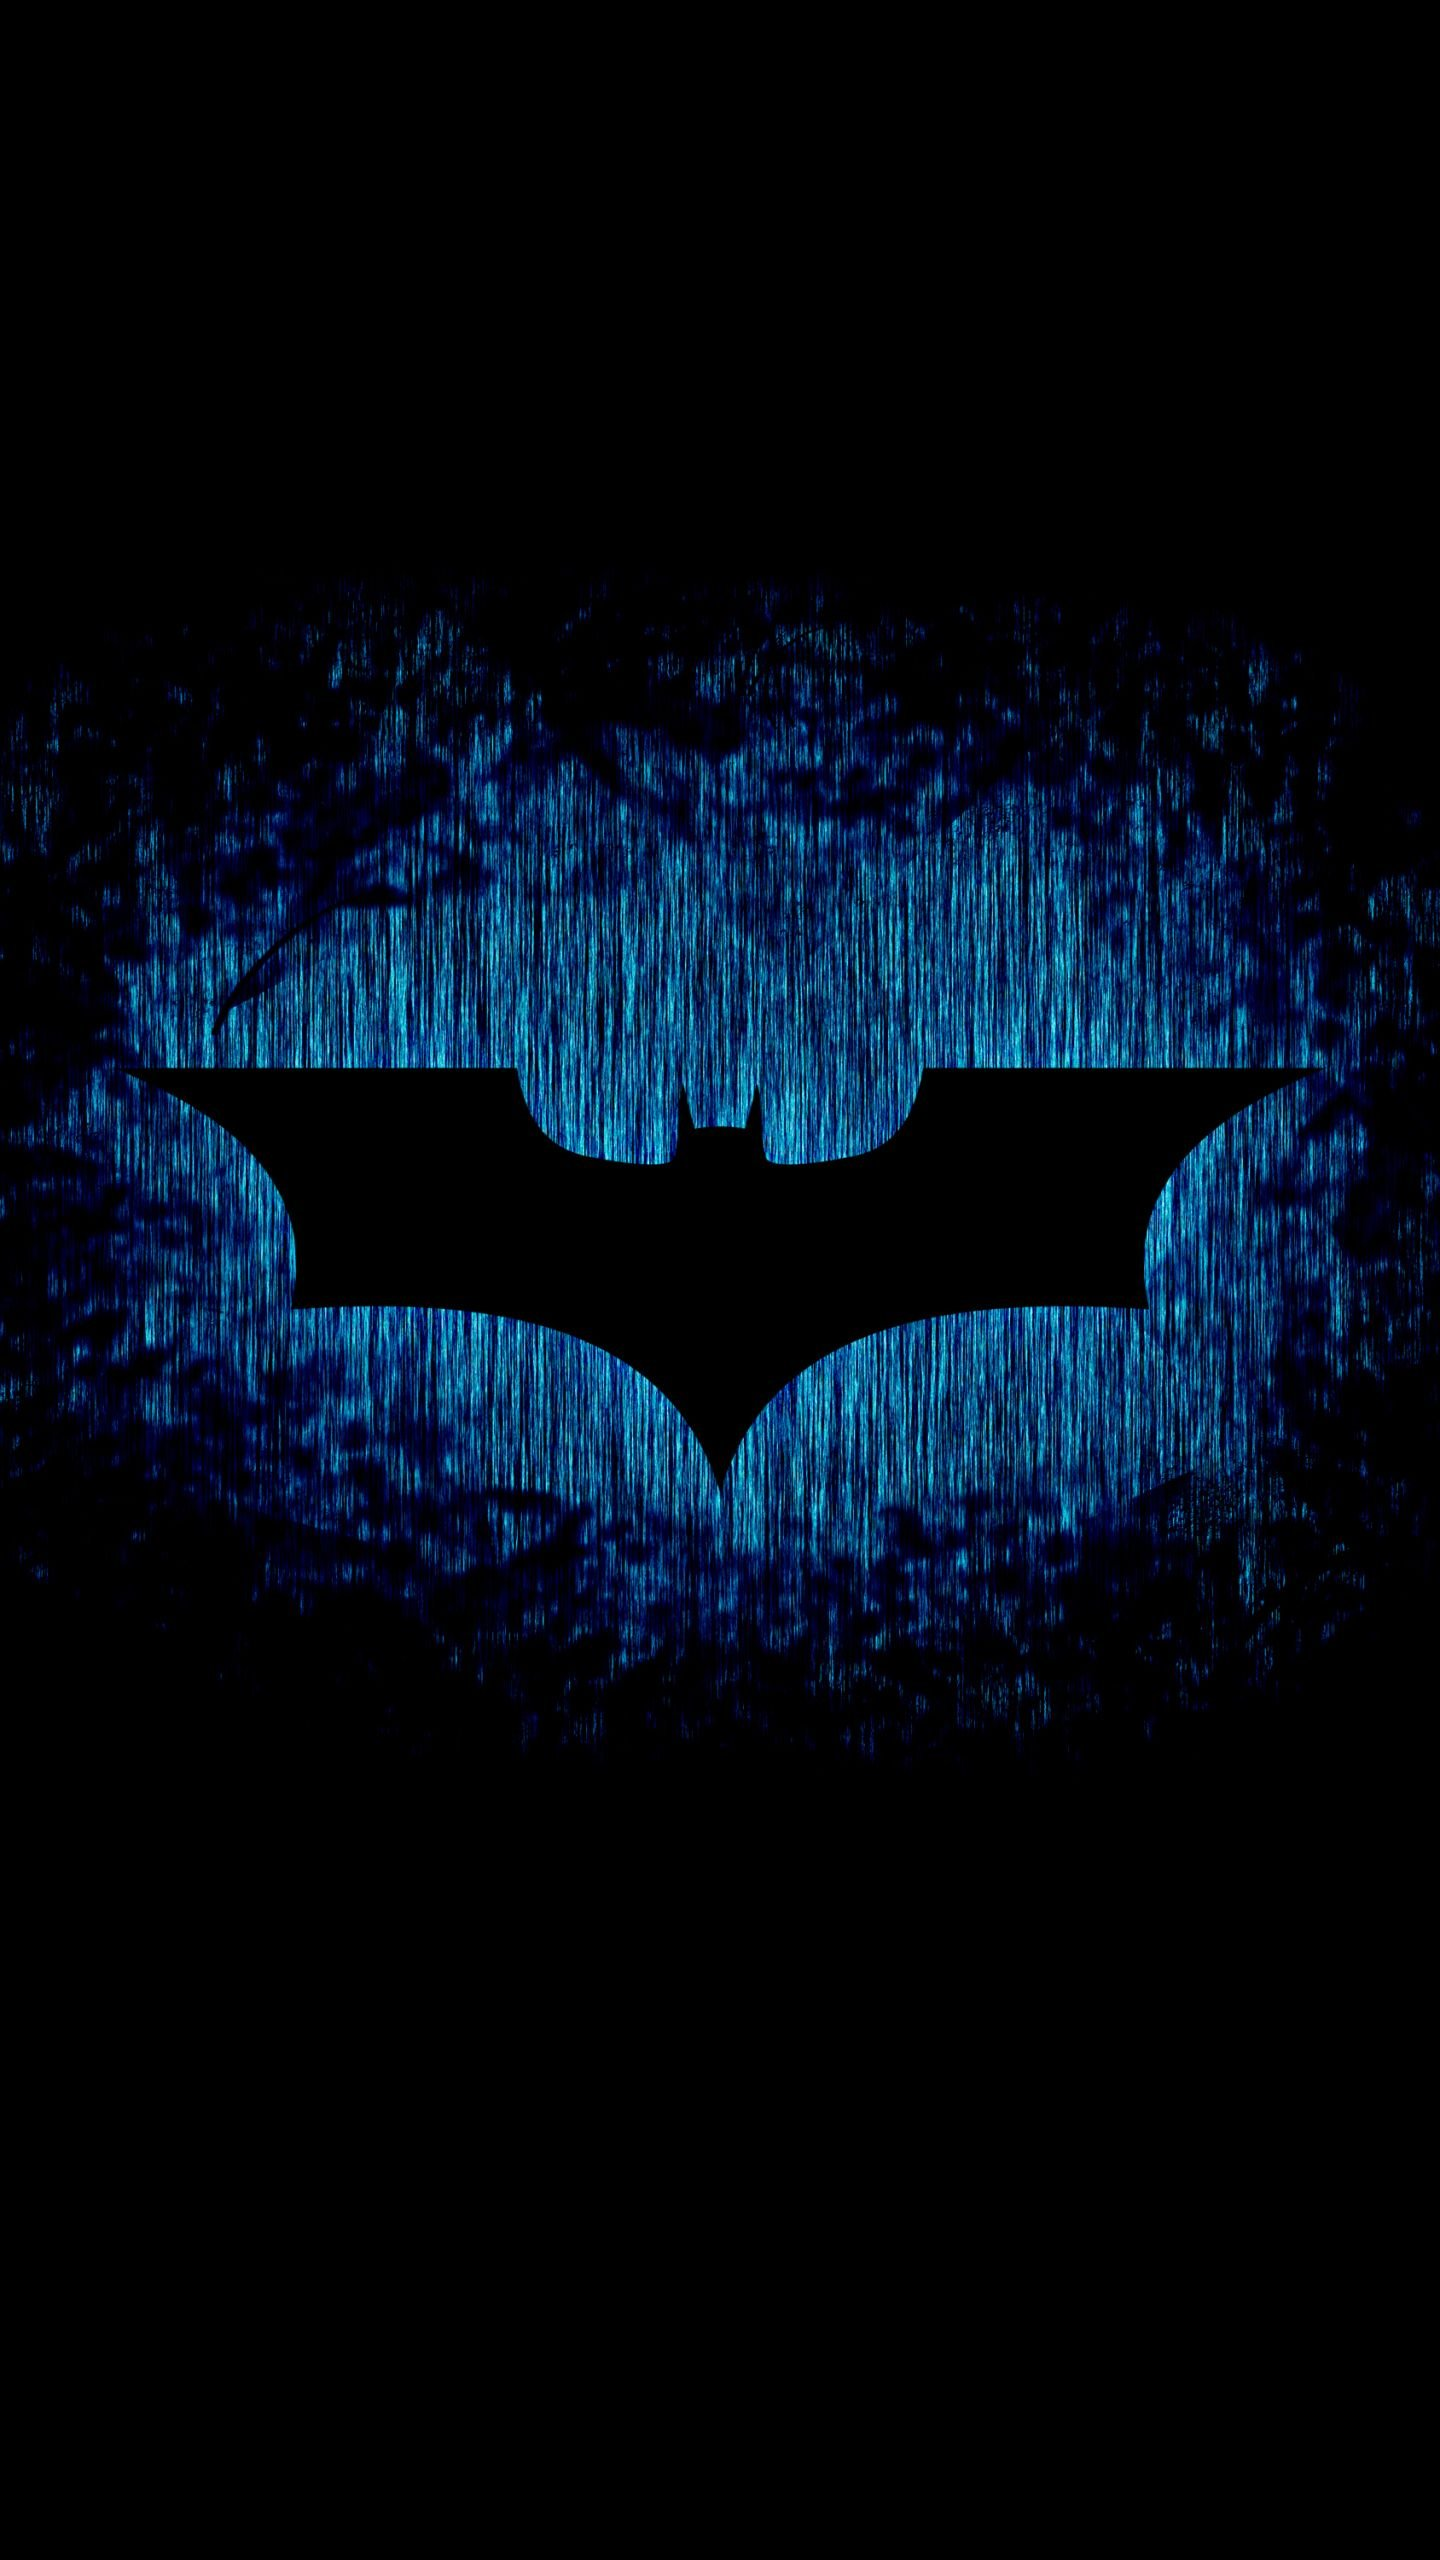 Batman Iphone Wallpapers Top Free Batman Iphone Backgrounds Wallpaperaccess